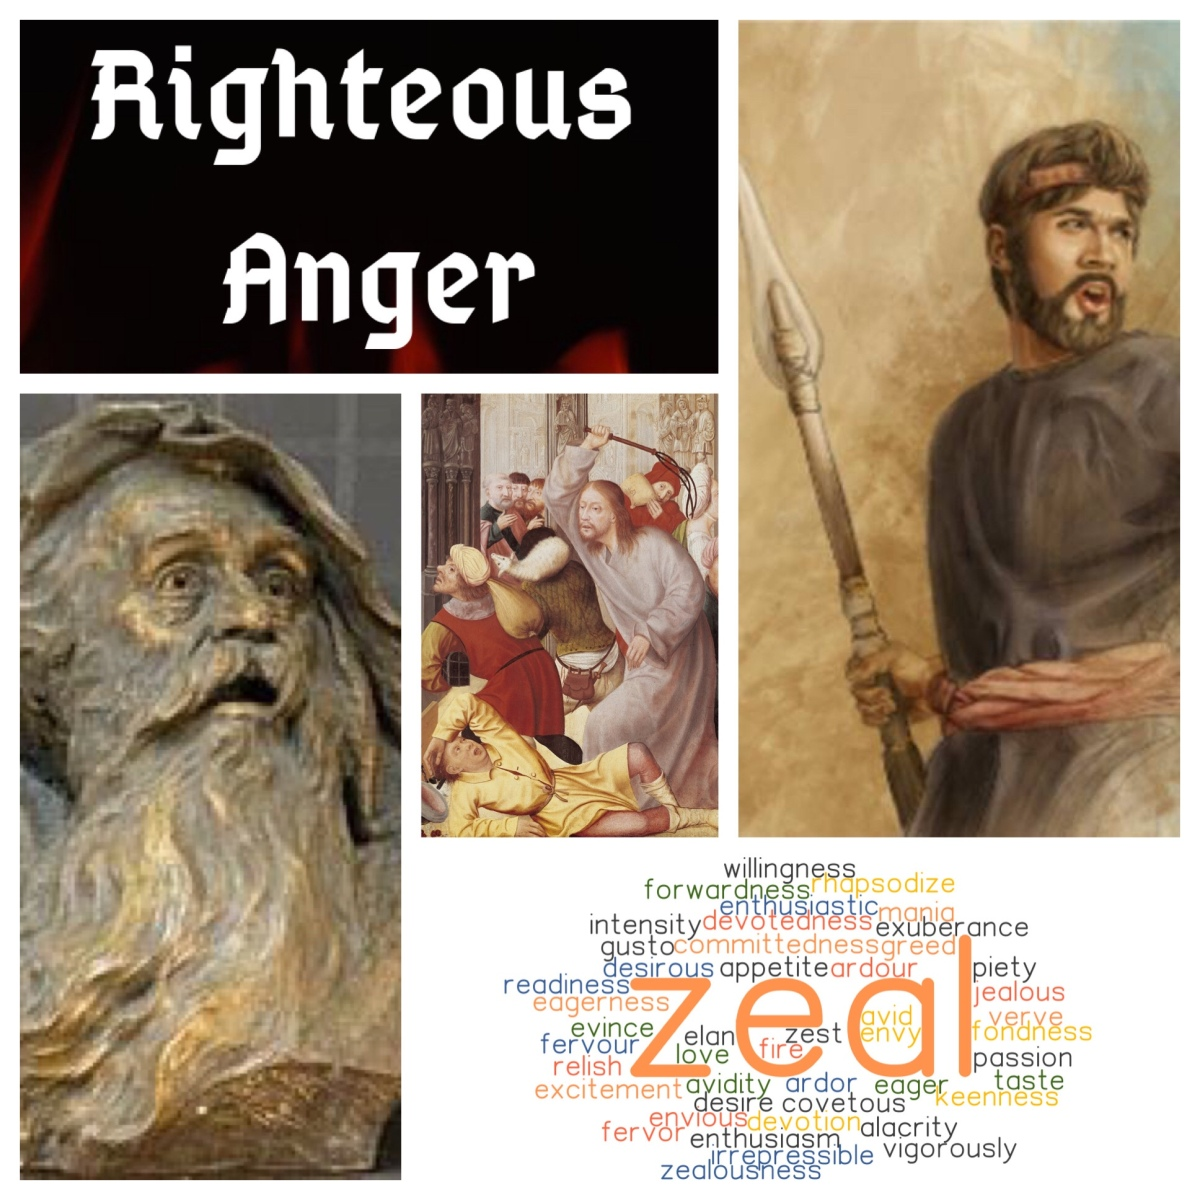 Righteous anger and zealous piety: the incident in the Temple (John 2; Lent 3B)